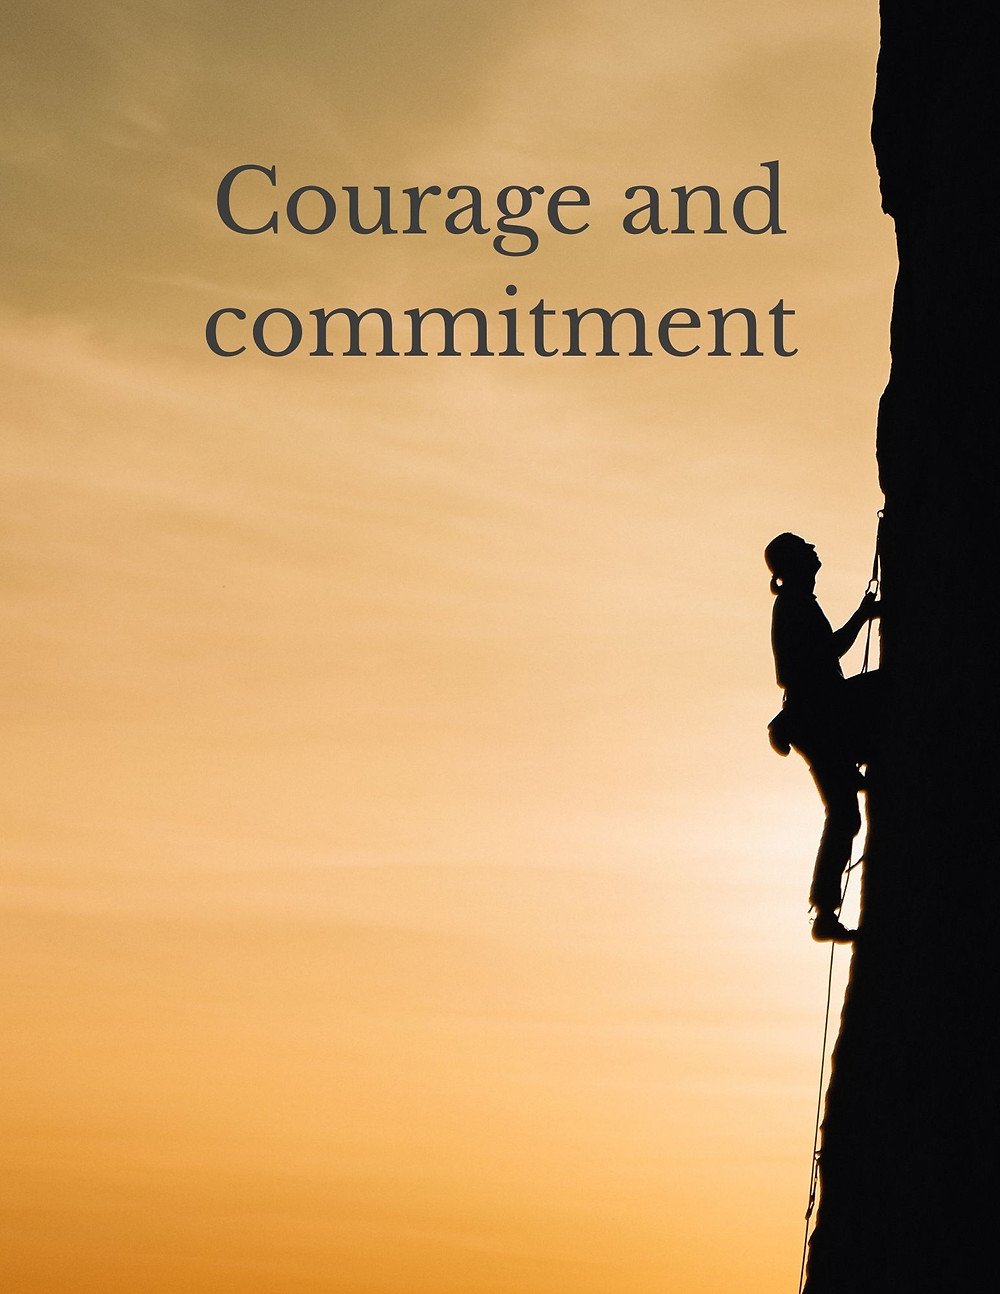 Courage and commitment